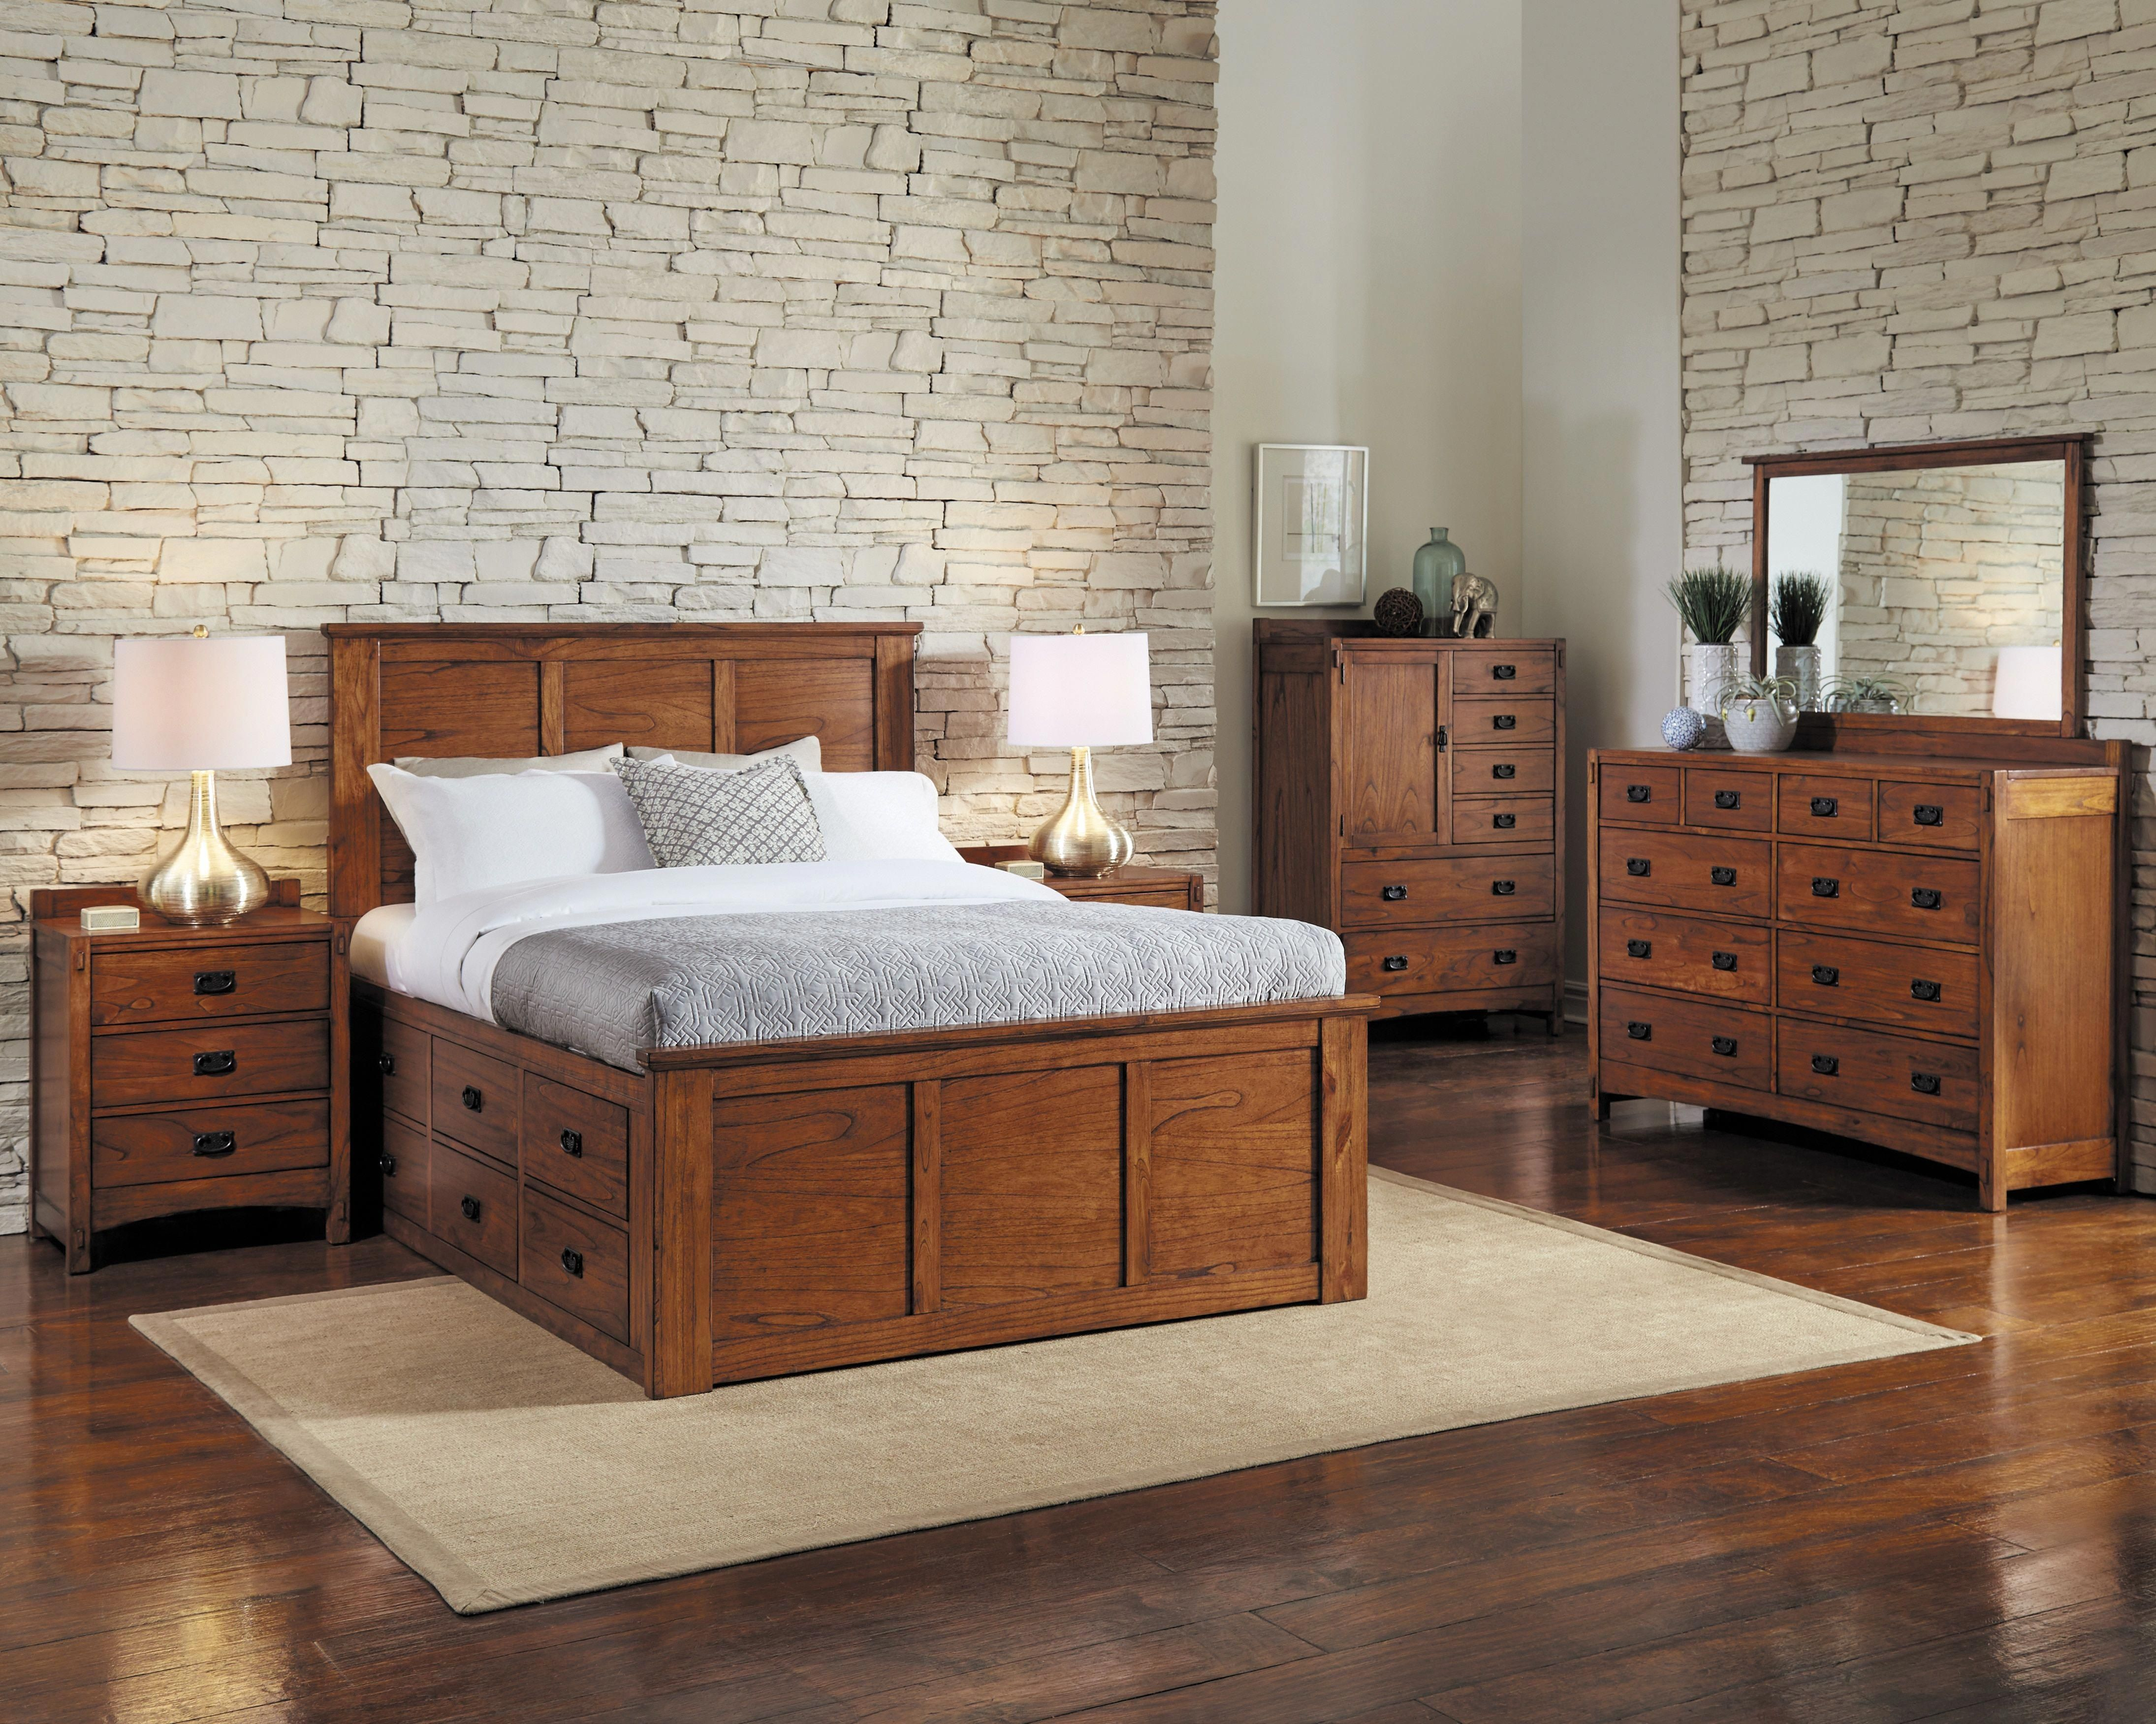 Günstiges Schlafzimmer Set #4pc #bedroom #queen #ridgecrest #storage In 2020 ...